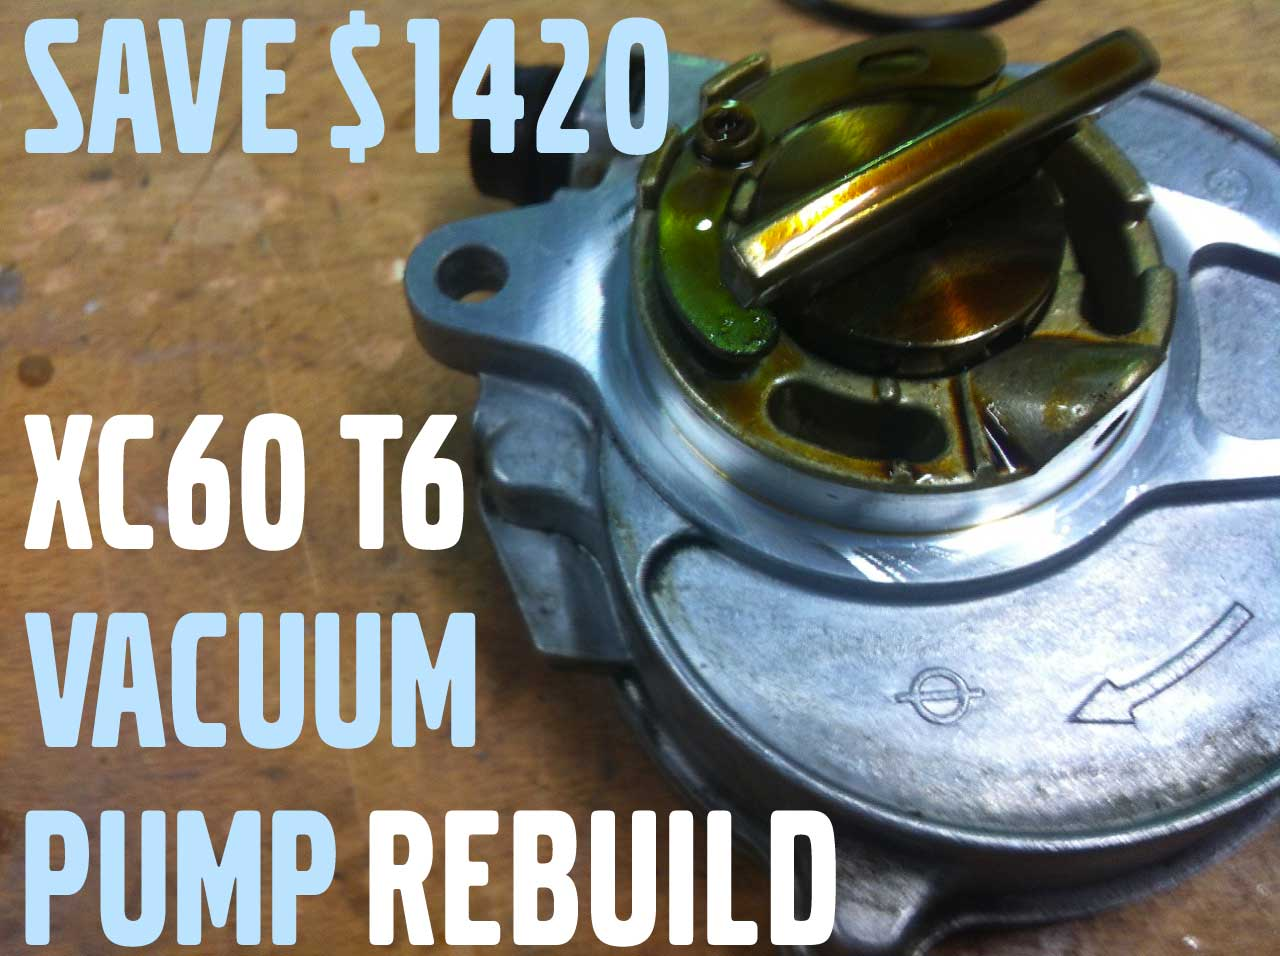 XC60 Vacuum Pump rebuild DIY - step-by-step with photos